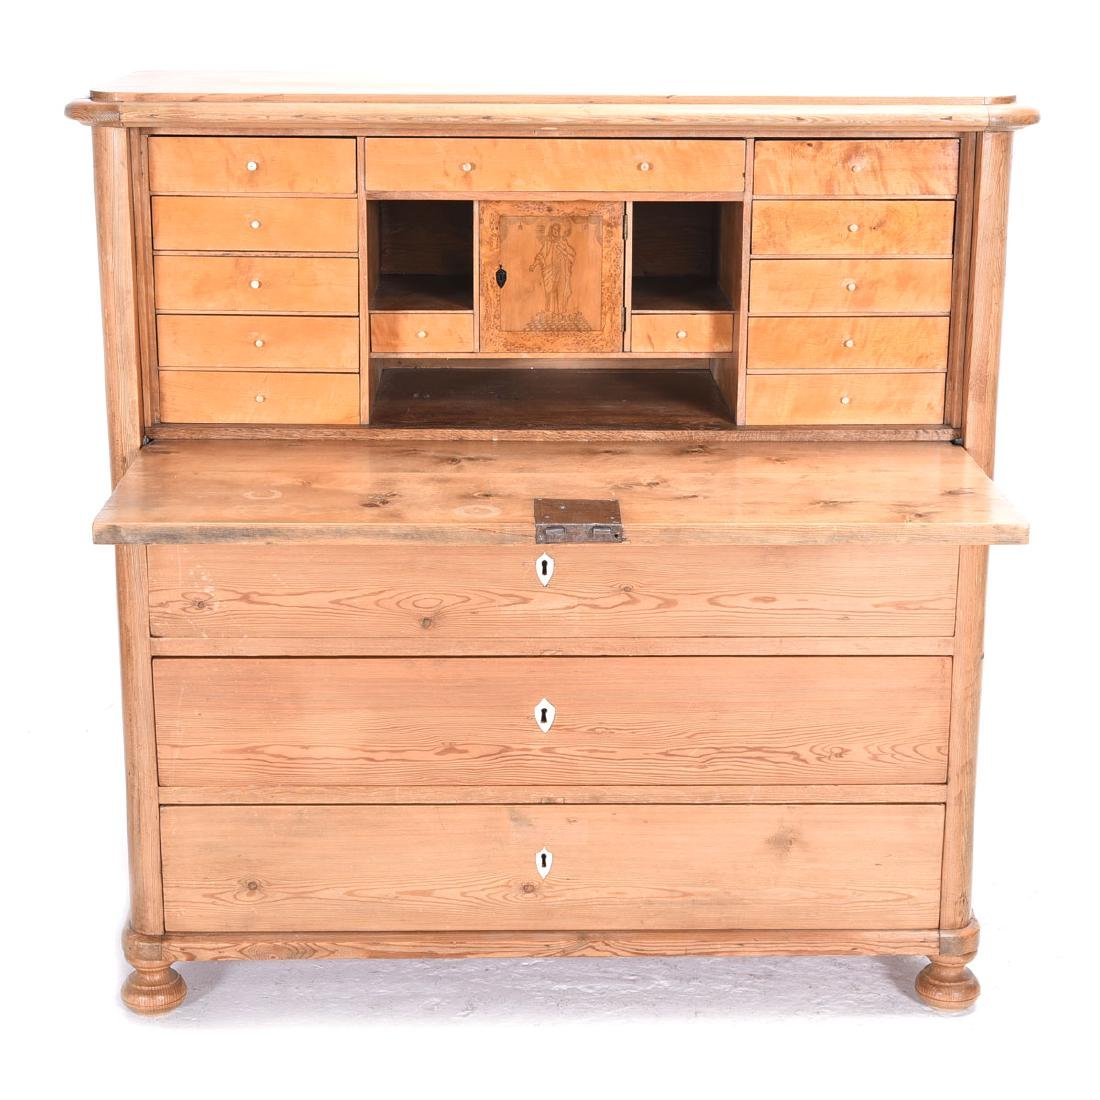 British Pine Secretary with Drop Front.